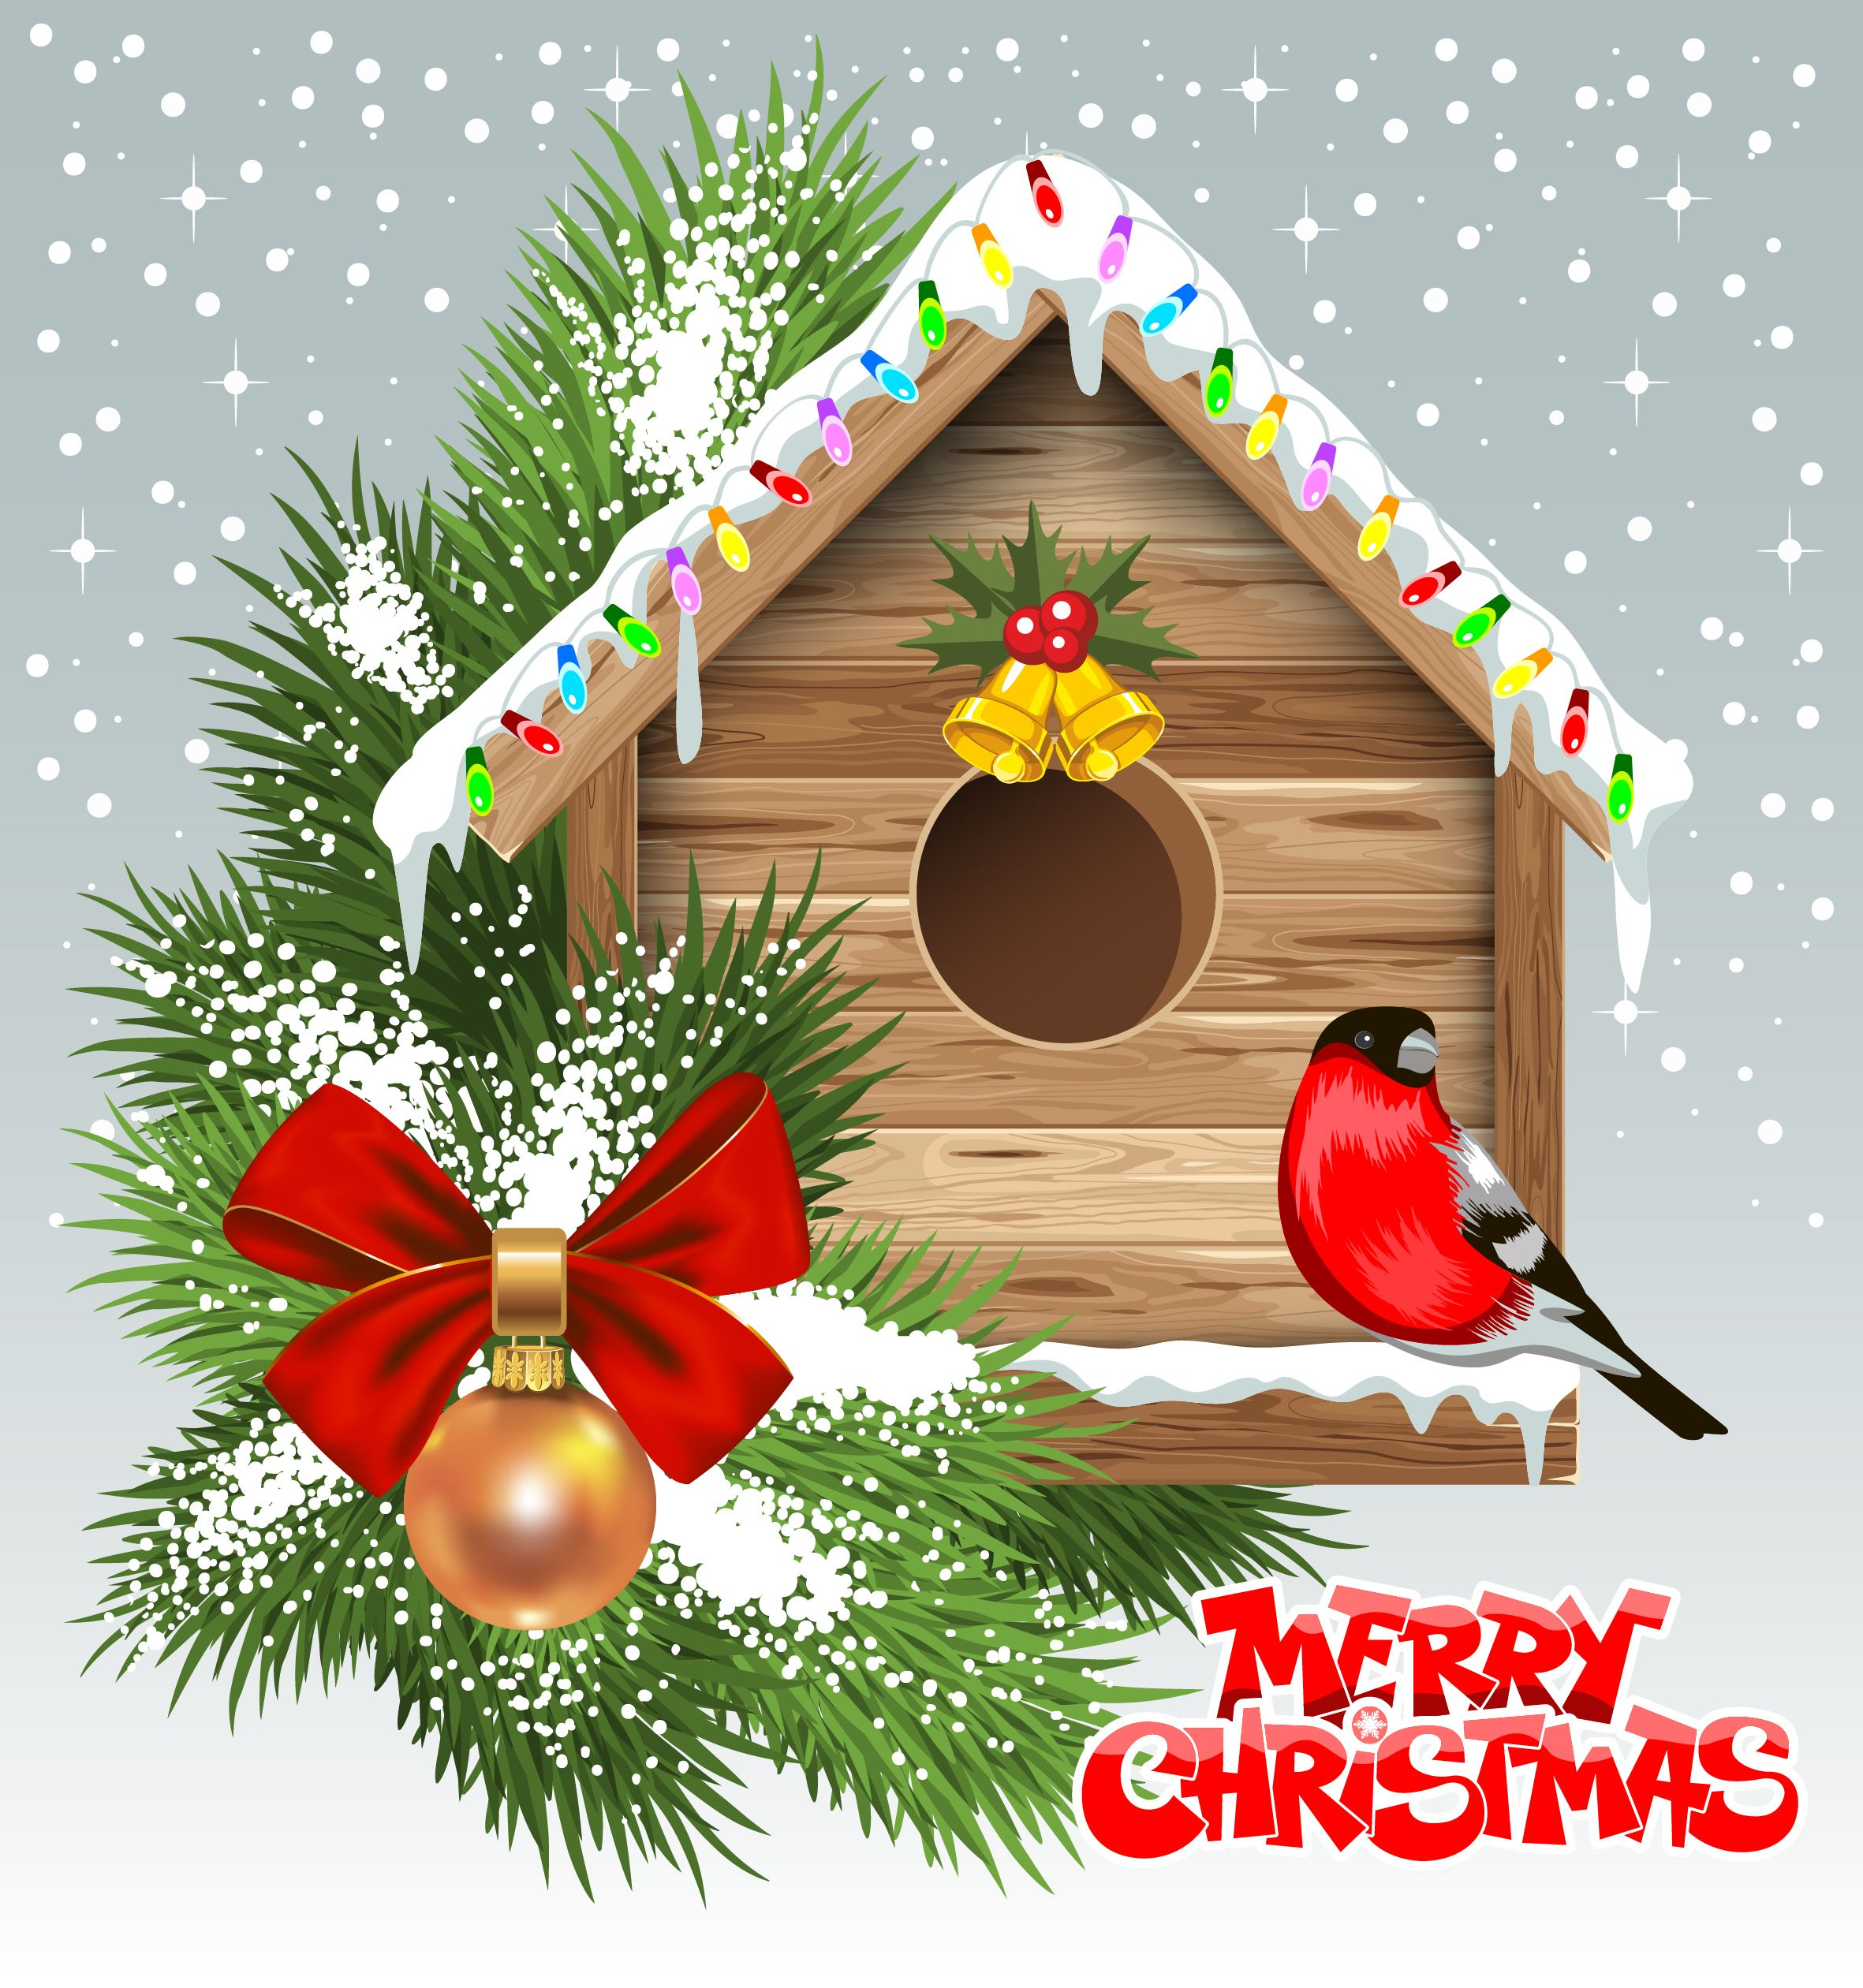 Merry Christmas With Decorated Birdhouse Vector